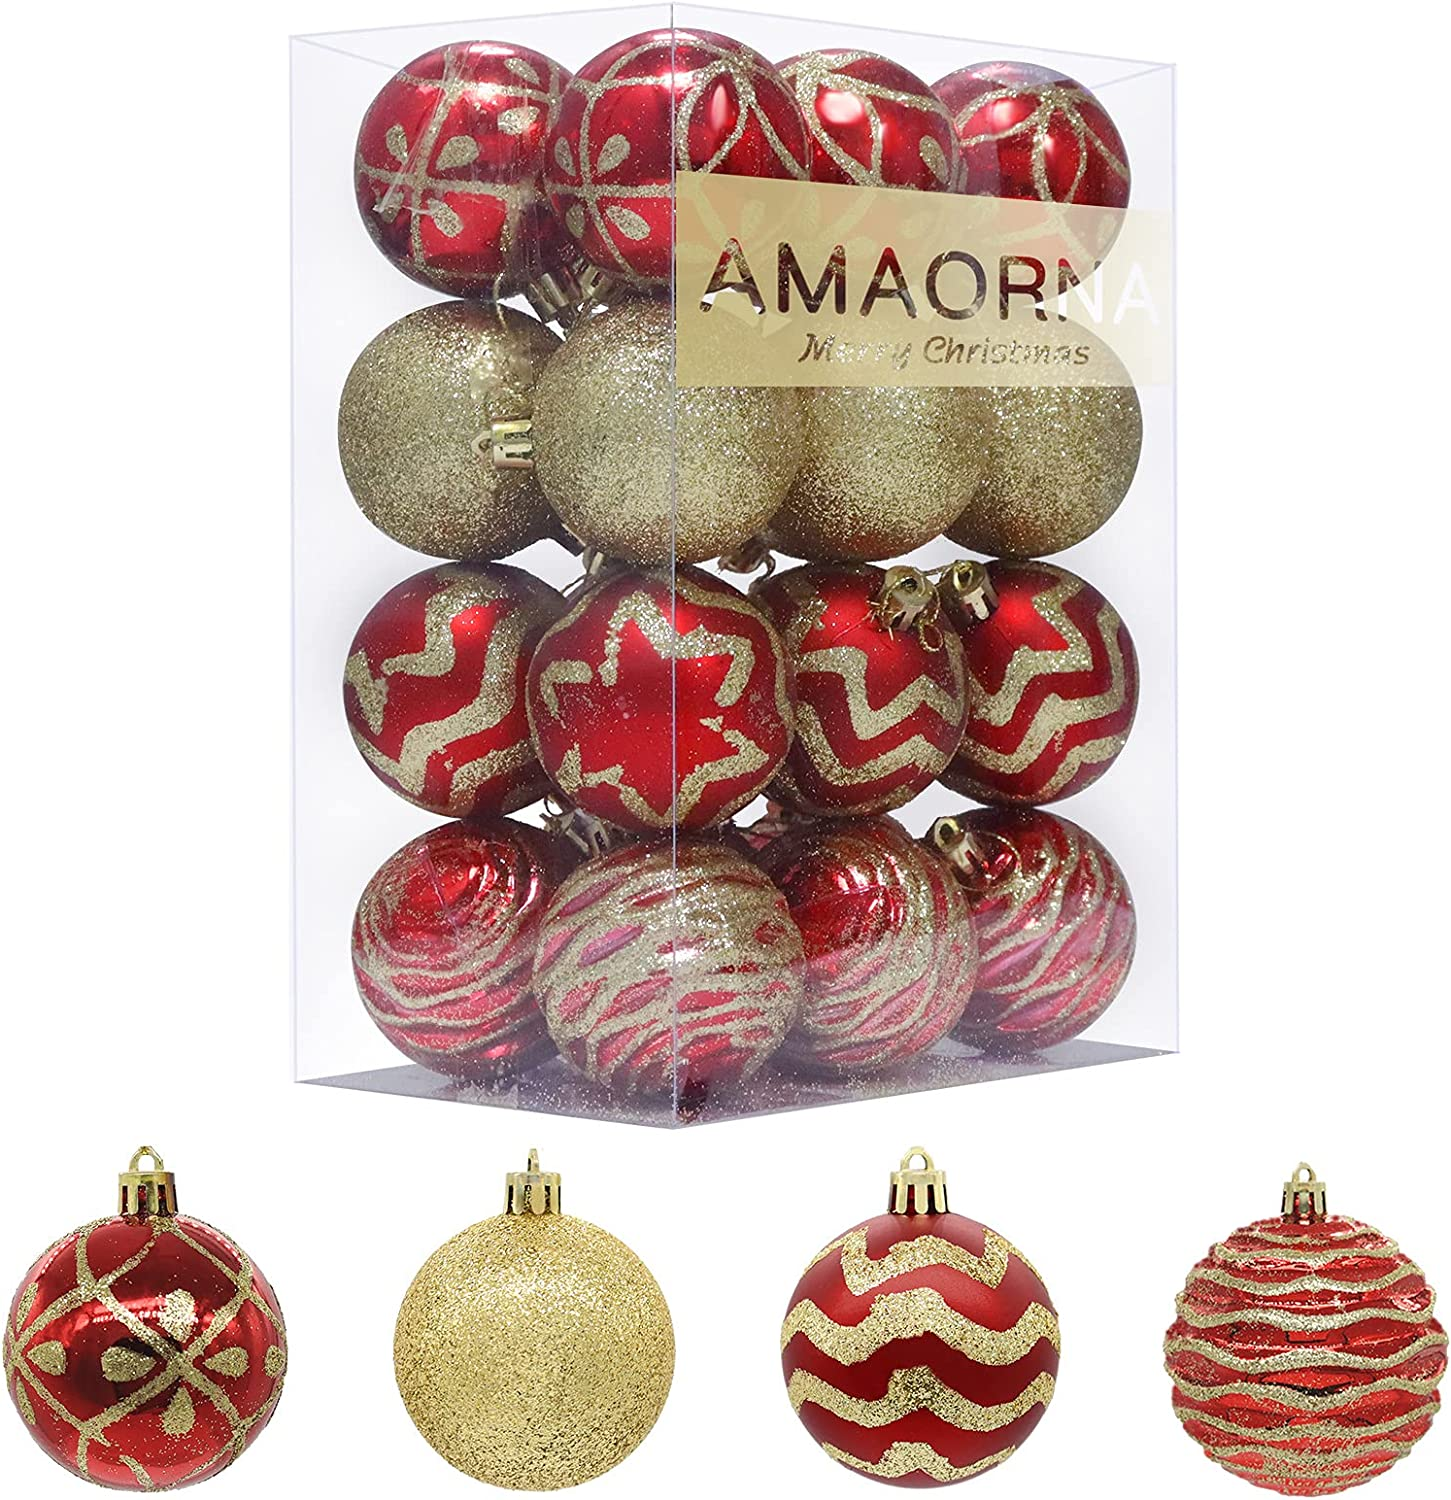 24PCS Christmas Balls Ornaments, Red and Gold Shatterproof Shiny Matte Glittering Christmas Tree Hanging Balls Set for Christmas Tree, Xmas Holiday, Home, Party Decorations 2.36